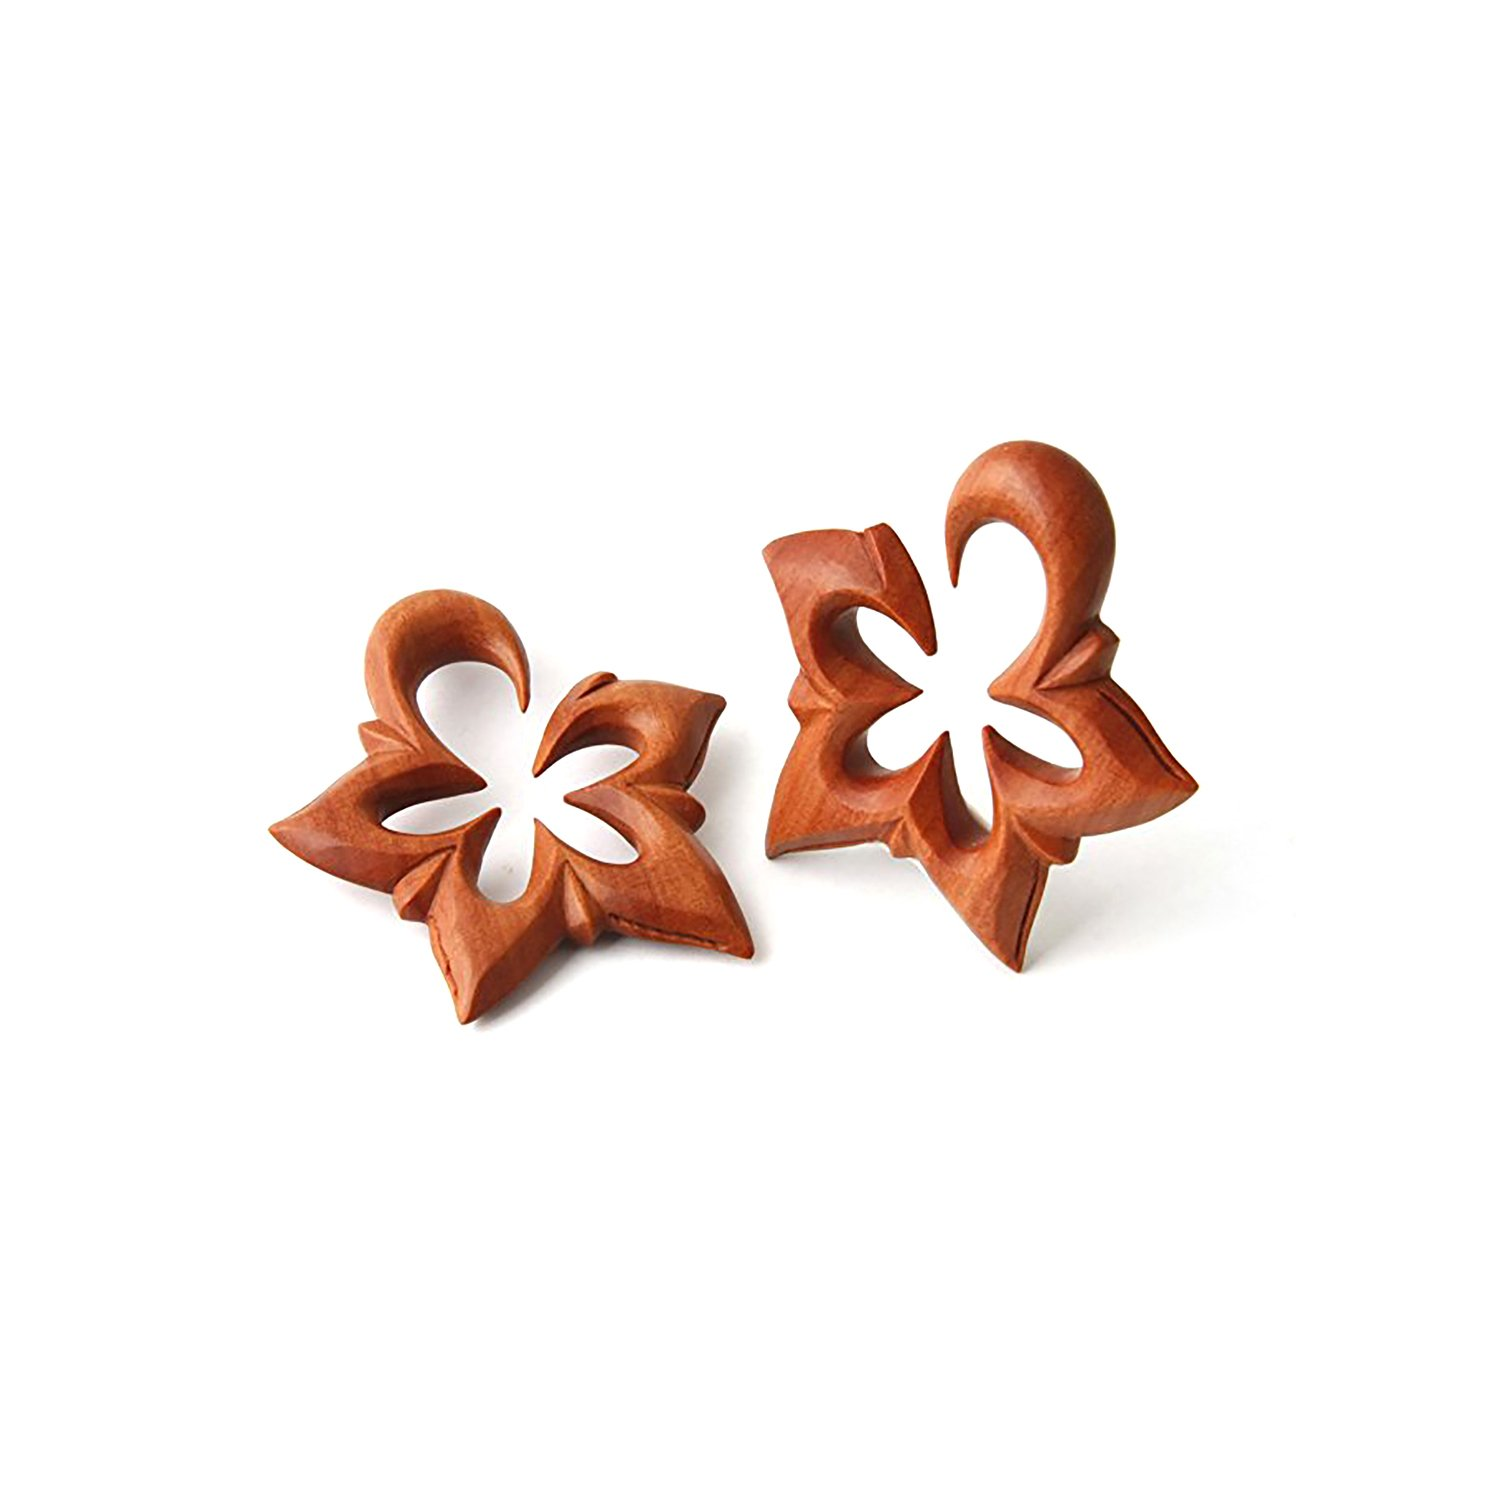 JewelryVolt Pair Double Carved Sono Wood Star Shaped Cut Out Ear Tapper Hanging Earring Plug Pincher Gauges Floral for Girls Jewelry Volt